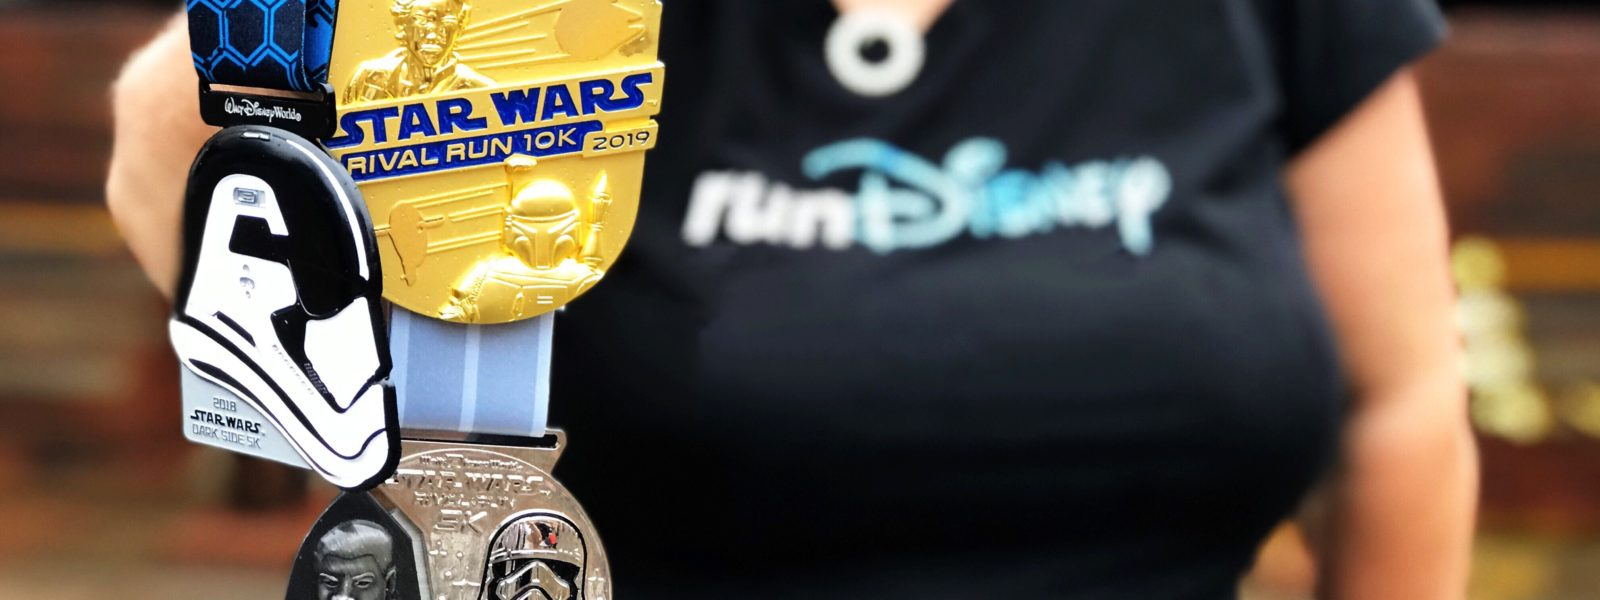 Sold Out runDisney Races? See If Your Travel Agent Can Help